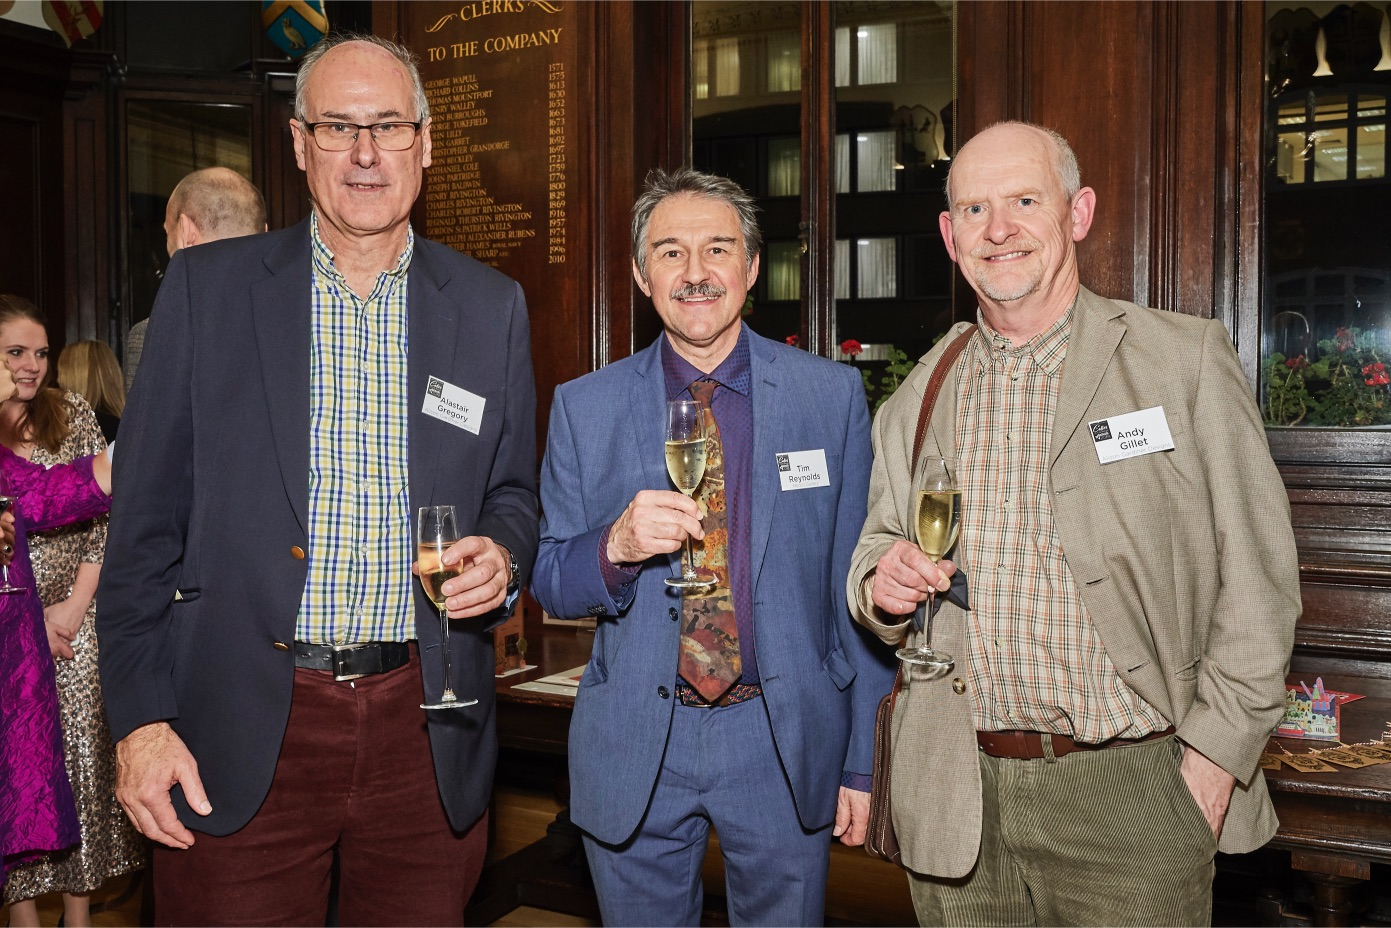 Above: (centre) Medici Gallery's Tim Reynolds with Alison Gardiner's Alistair Gregory (left) and Andy Gillett.